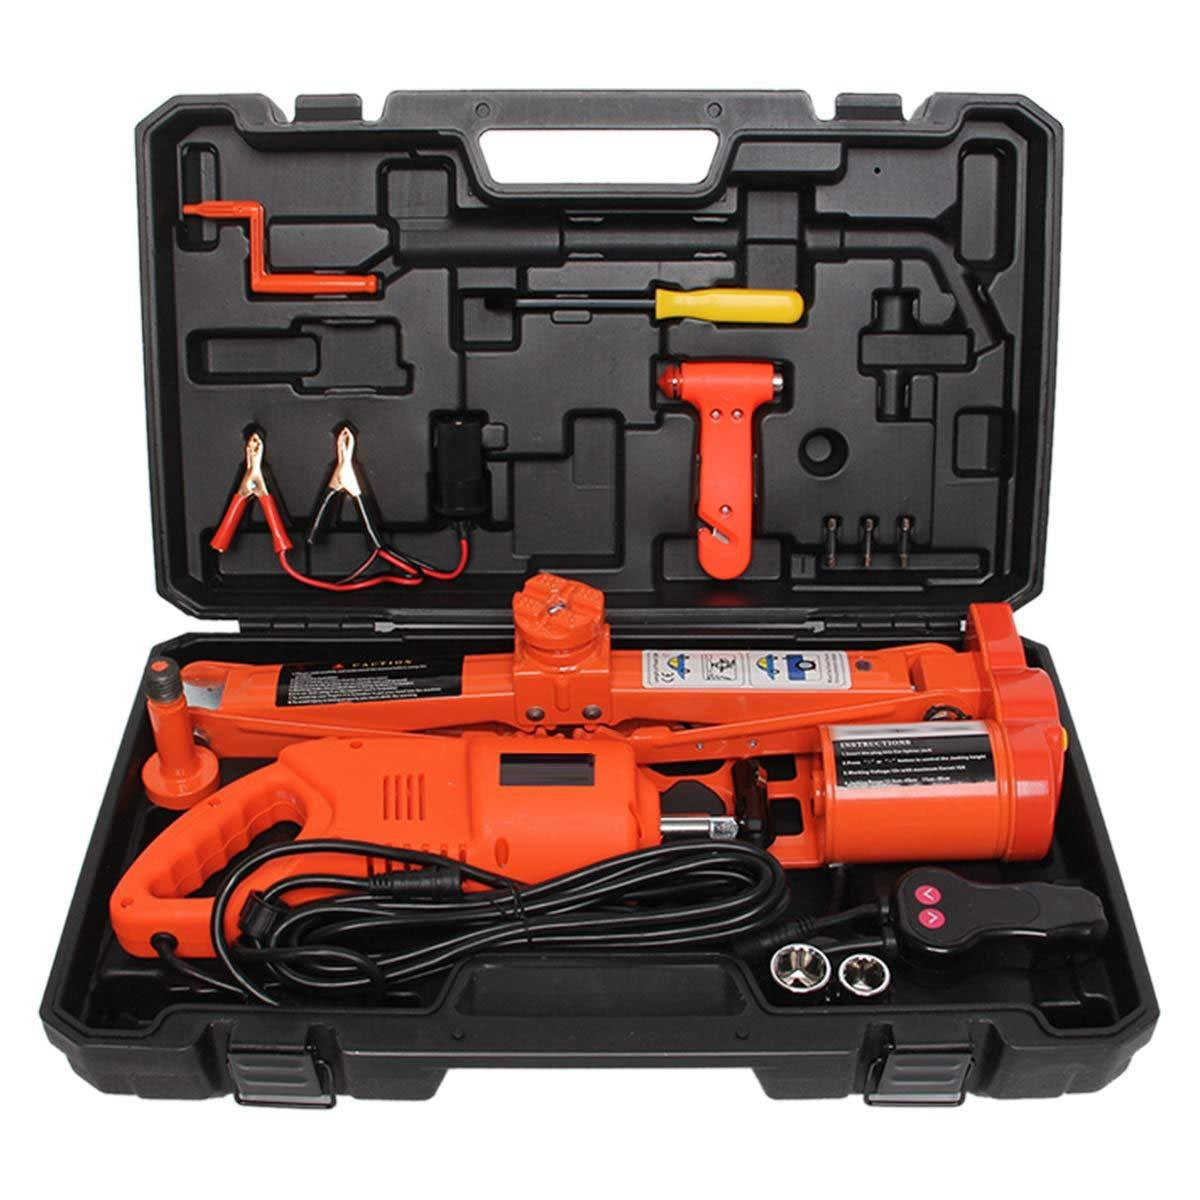 Electric Scissor Jack 2-in-1 Car Repair Tool Kit